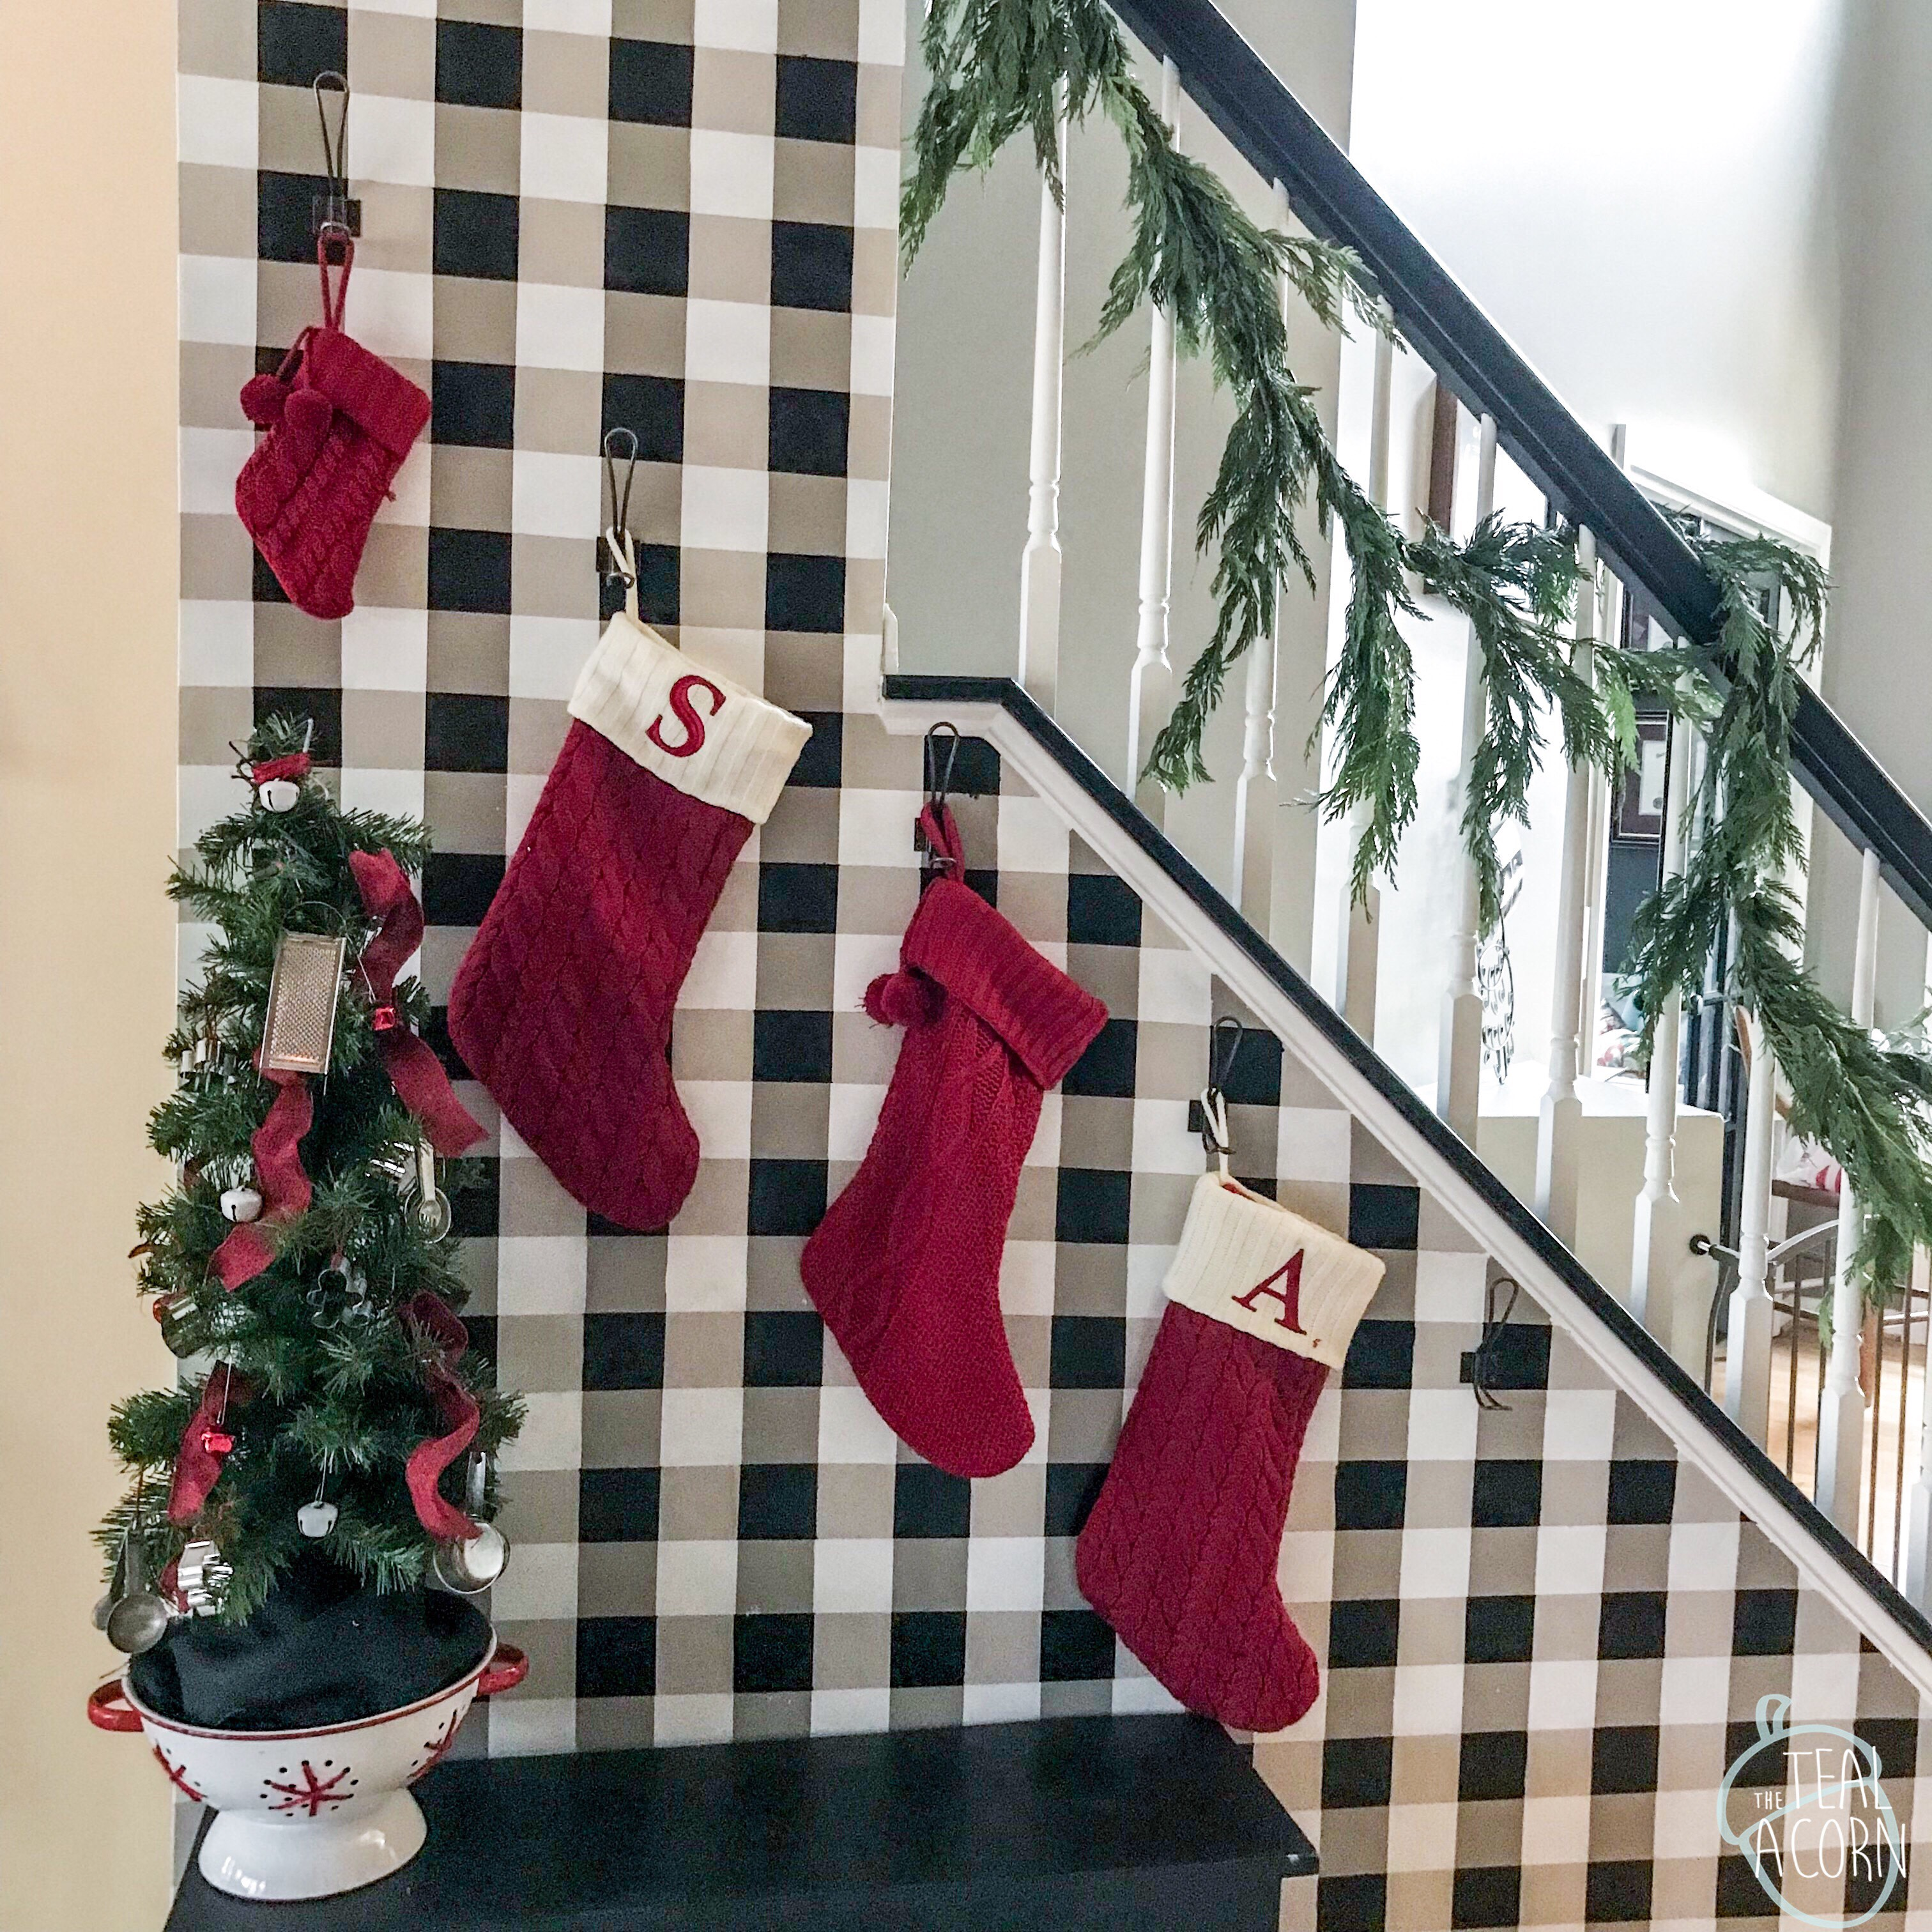 black and white buffalo check painted diy wall with red cable knit stockings, and cypress garland going down the bannister.